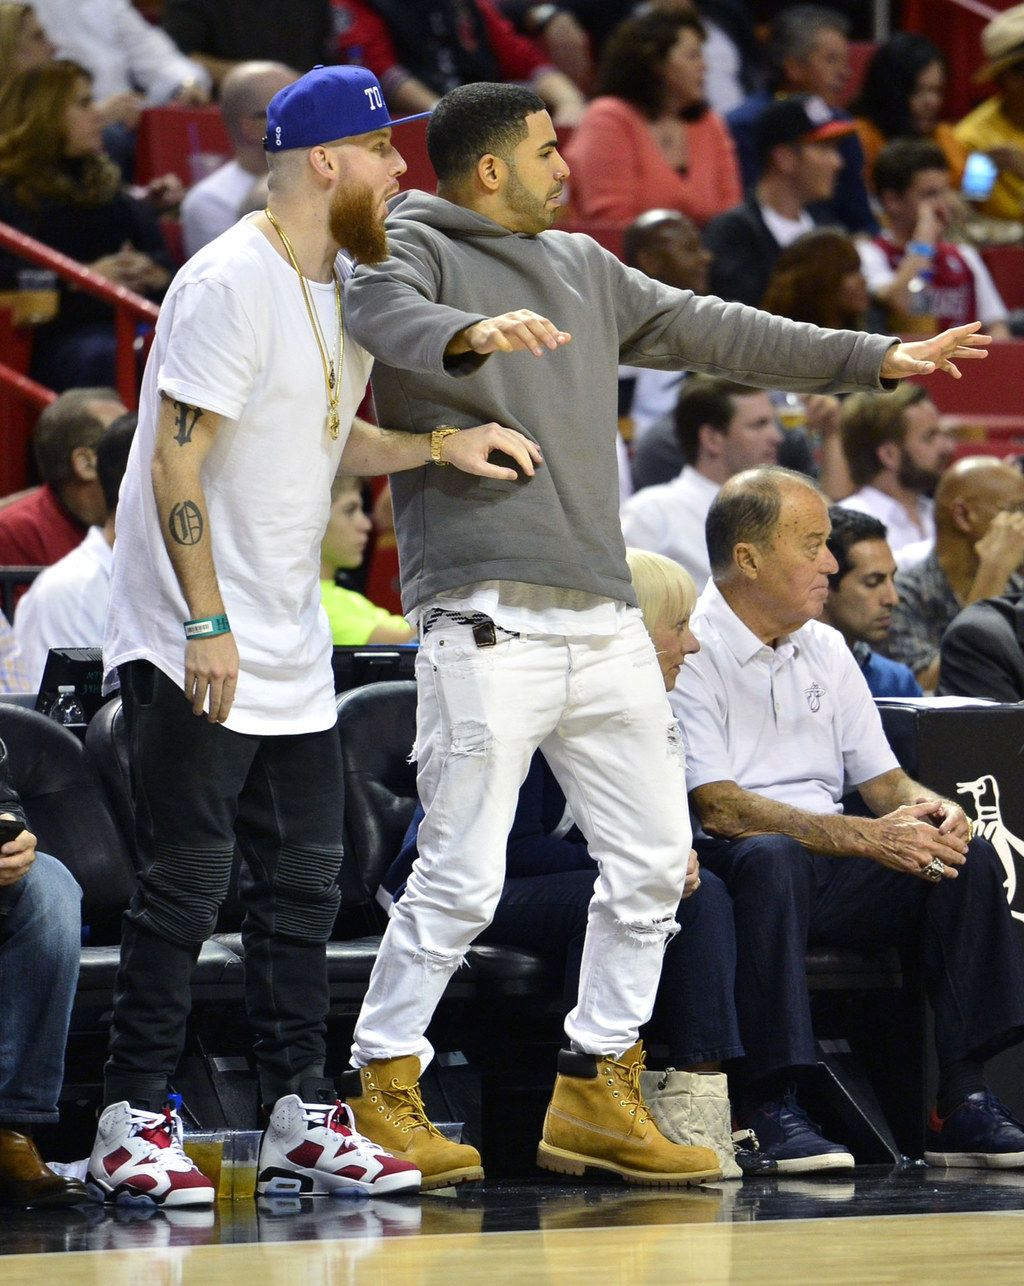 The 7 Stages Of Drake At A Basketball Game Rihanna